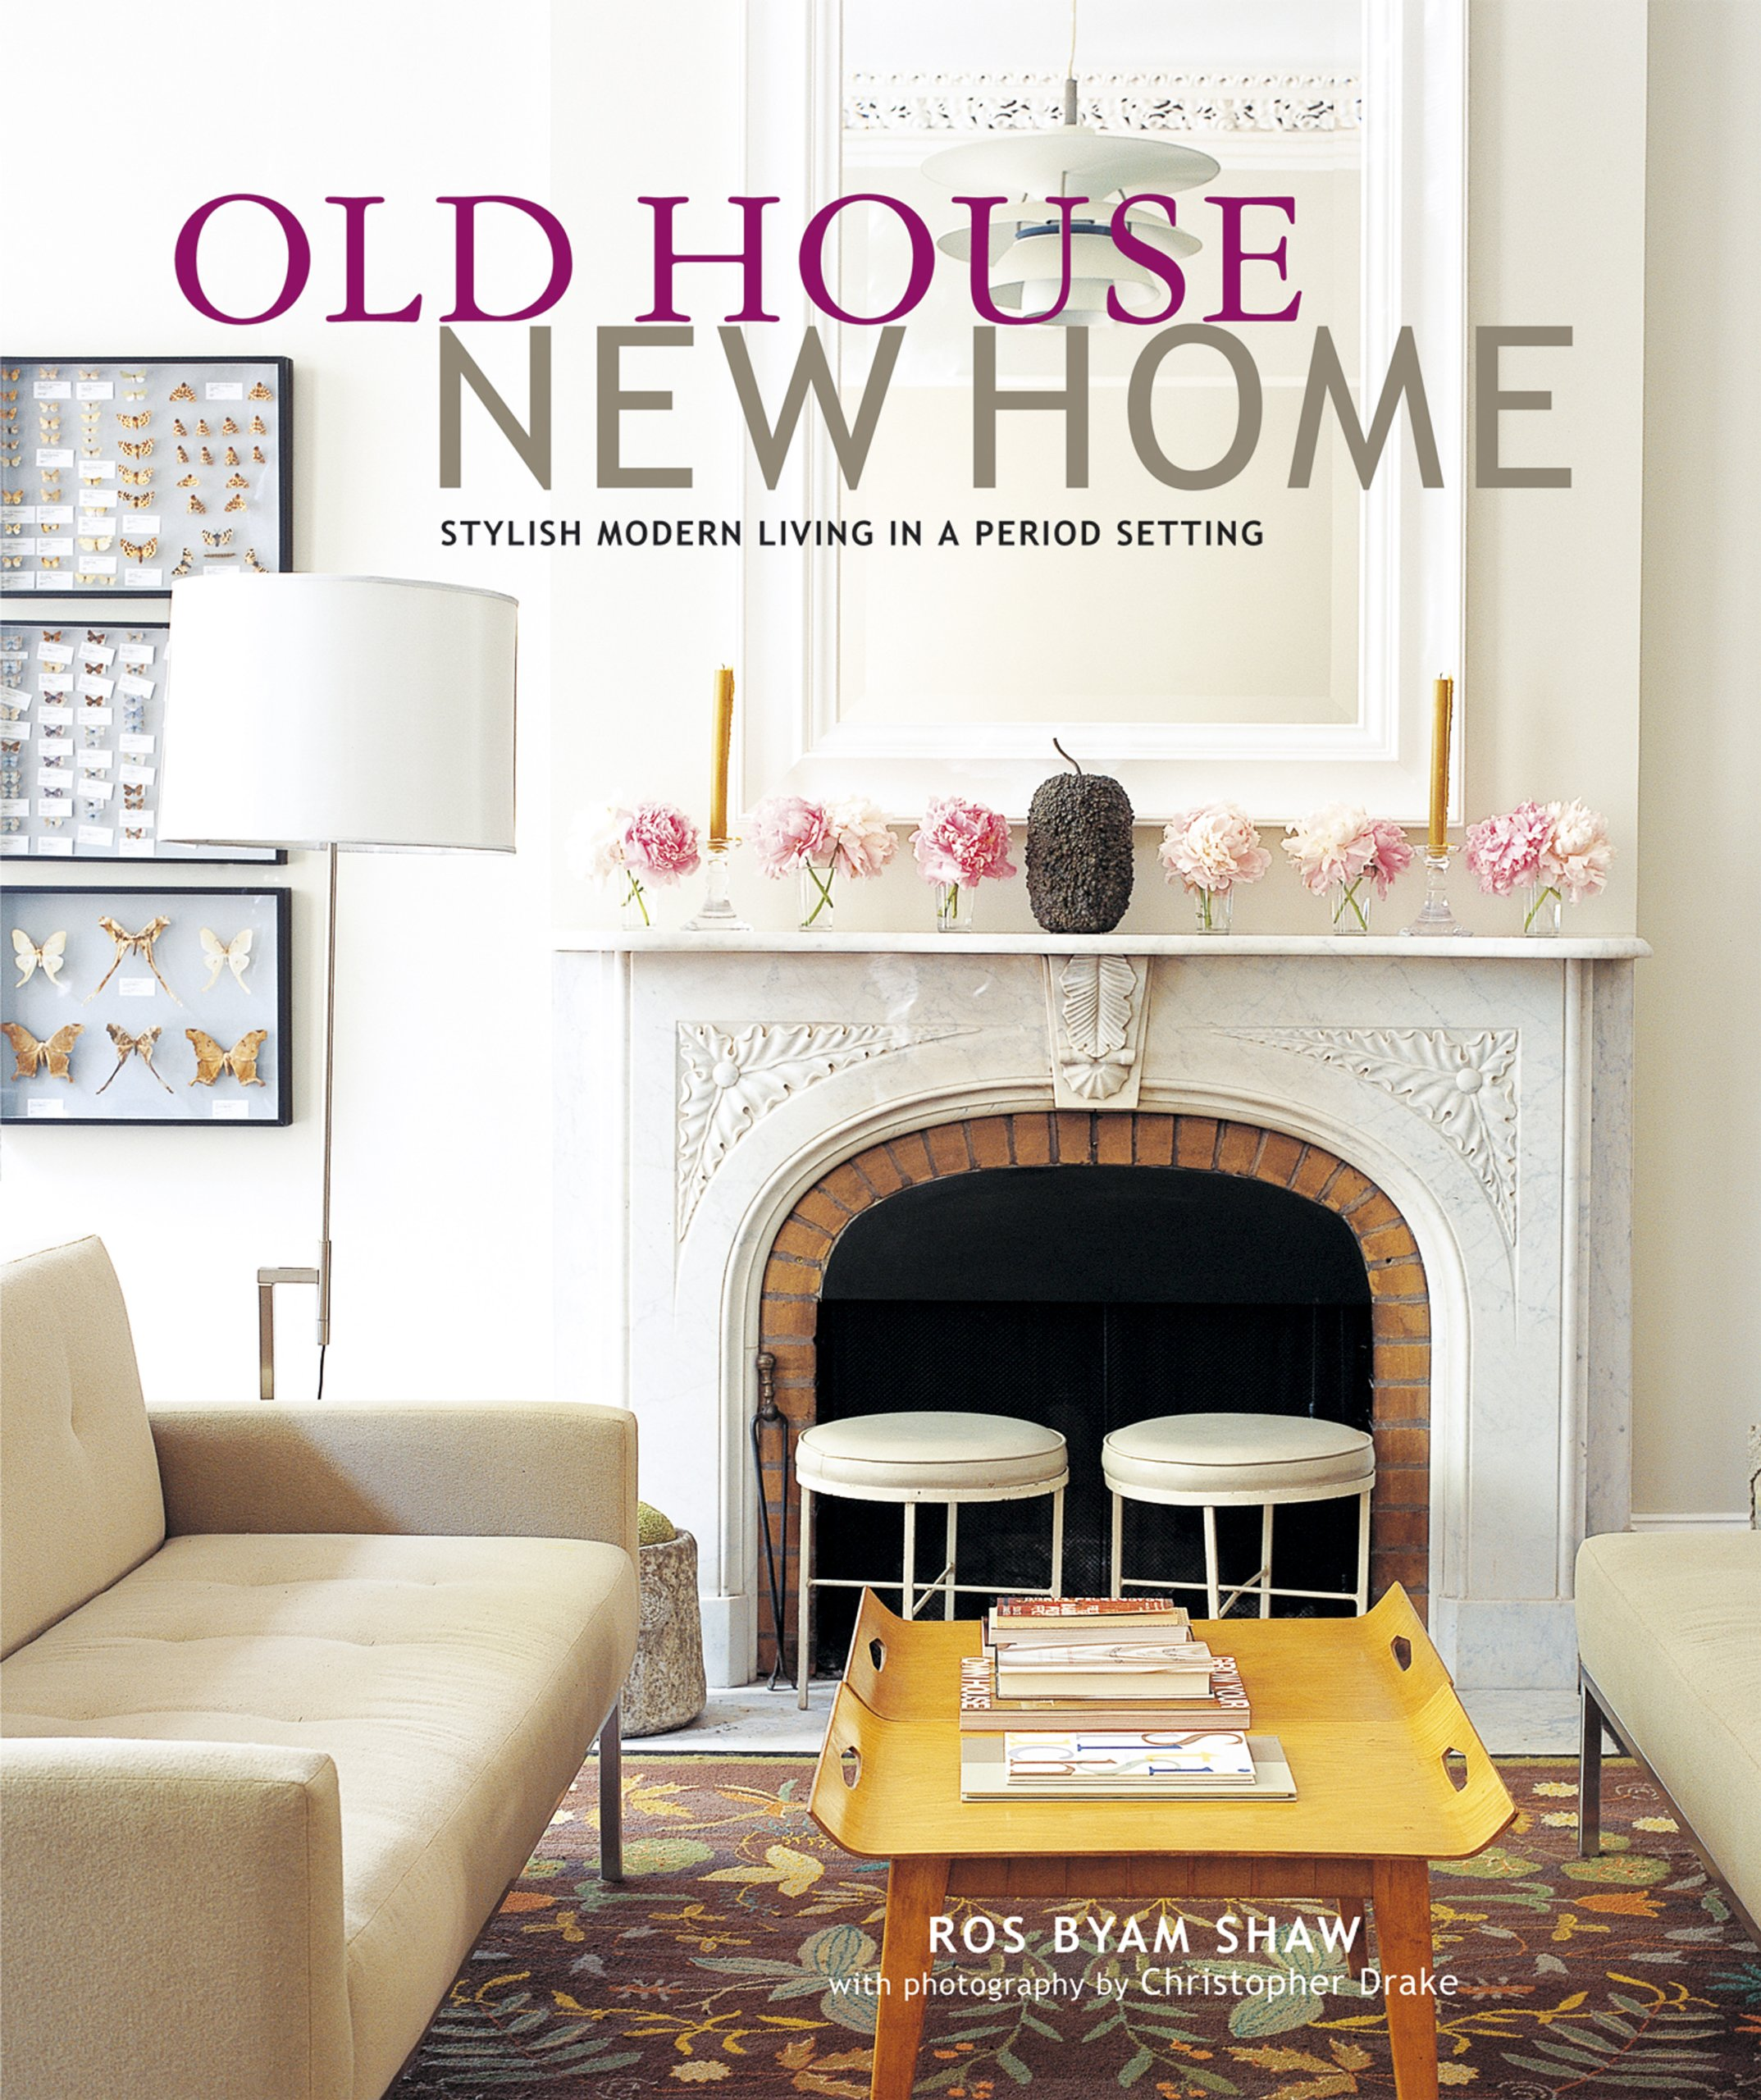 Old house new home stylish modern living in a period setting paperback march 31 2011